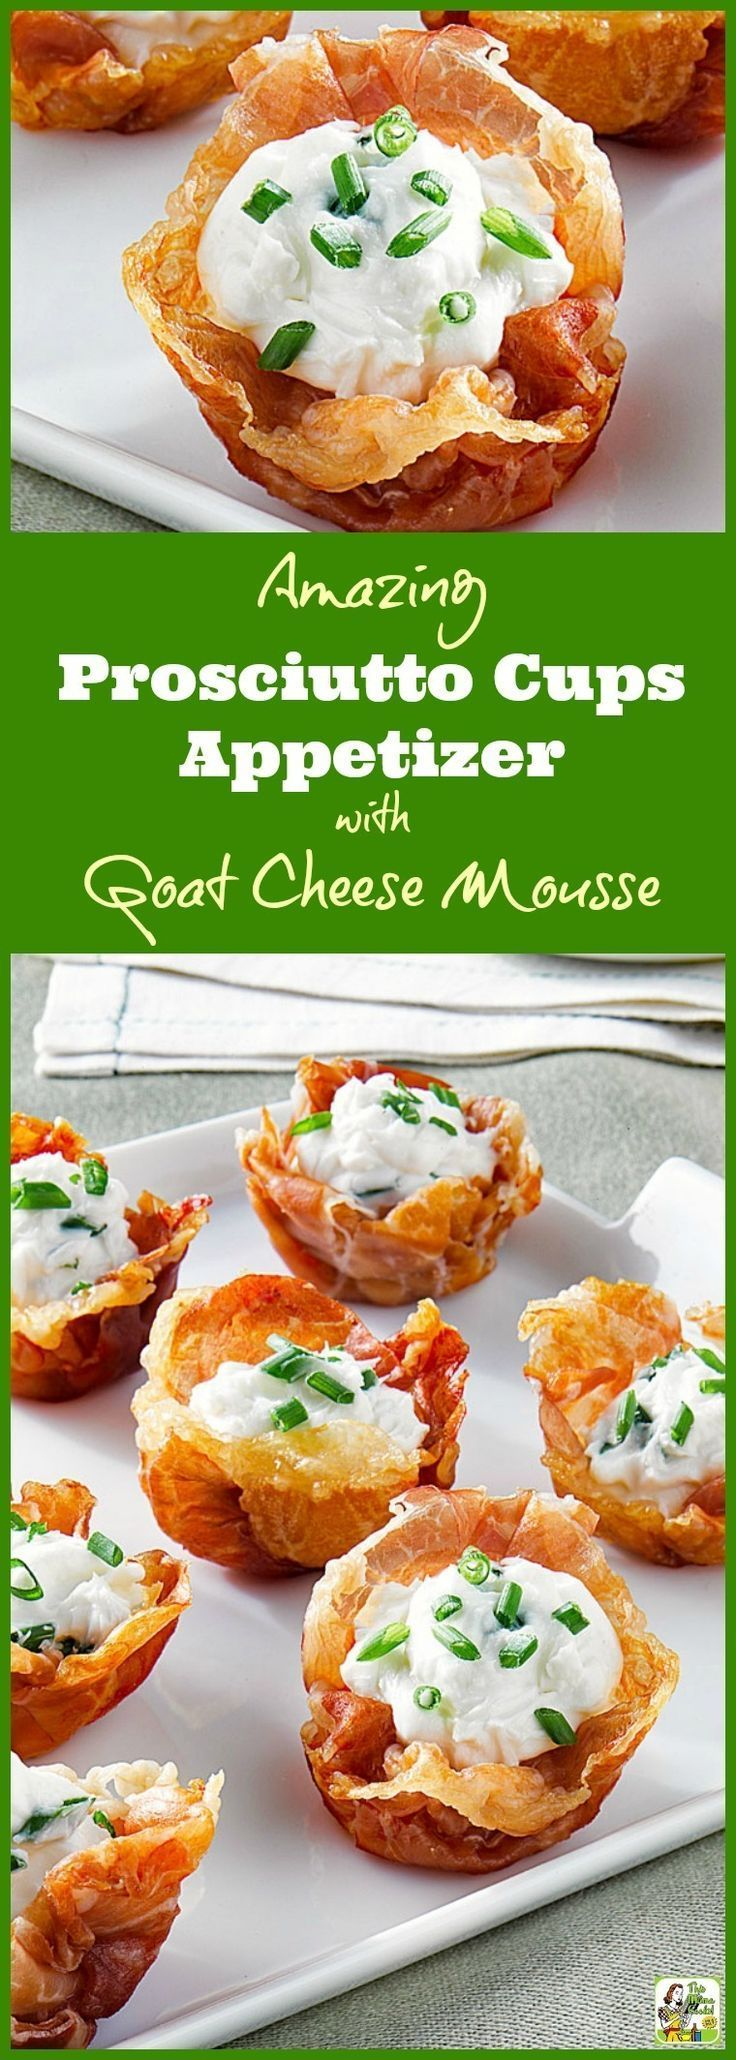 Try this Amazing Prosciutto Cups Appetizer with Goat Cheese Mousse at your party. Click to get this easy appetizer recipe. Since you don't need puff pastry to make the appetizer cups, this appetizer recipe is naturally gluten free!